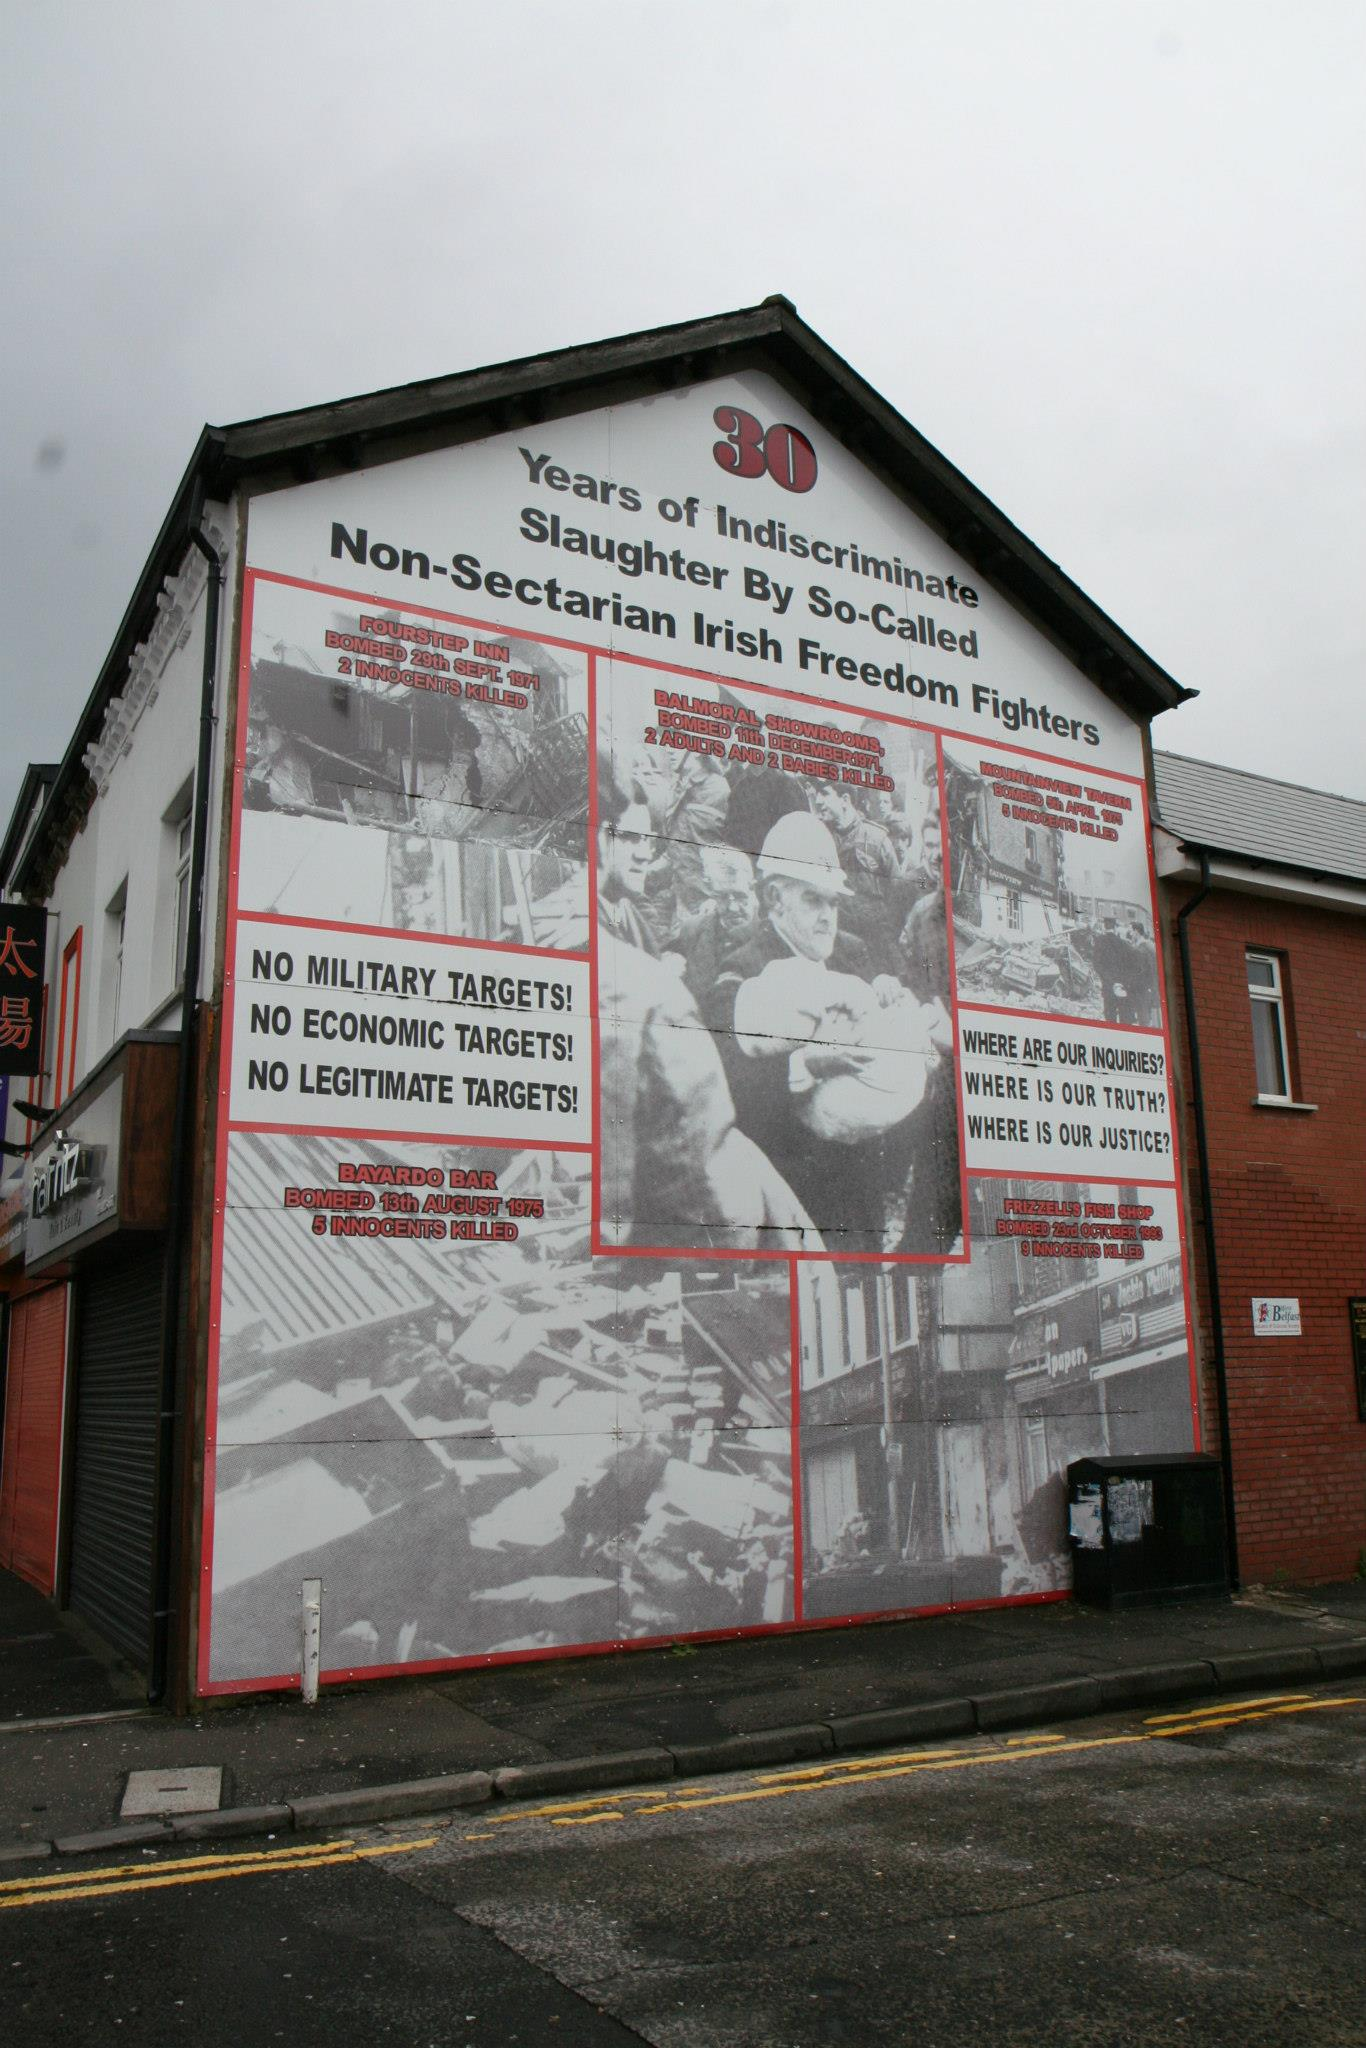 '30 years of indiscriminate slaughter by so-called non-sectarian Irish freedom fighters'